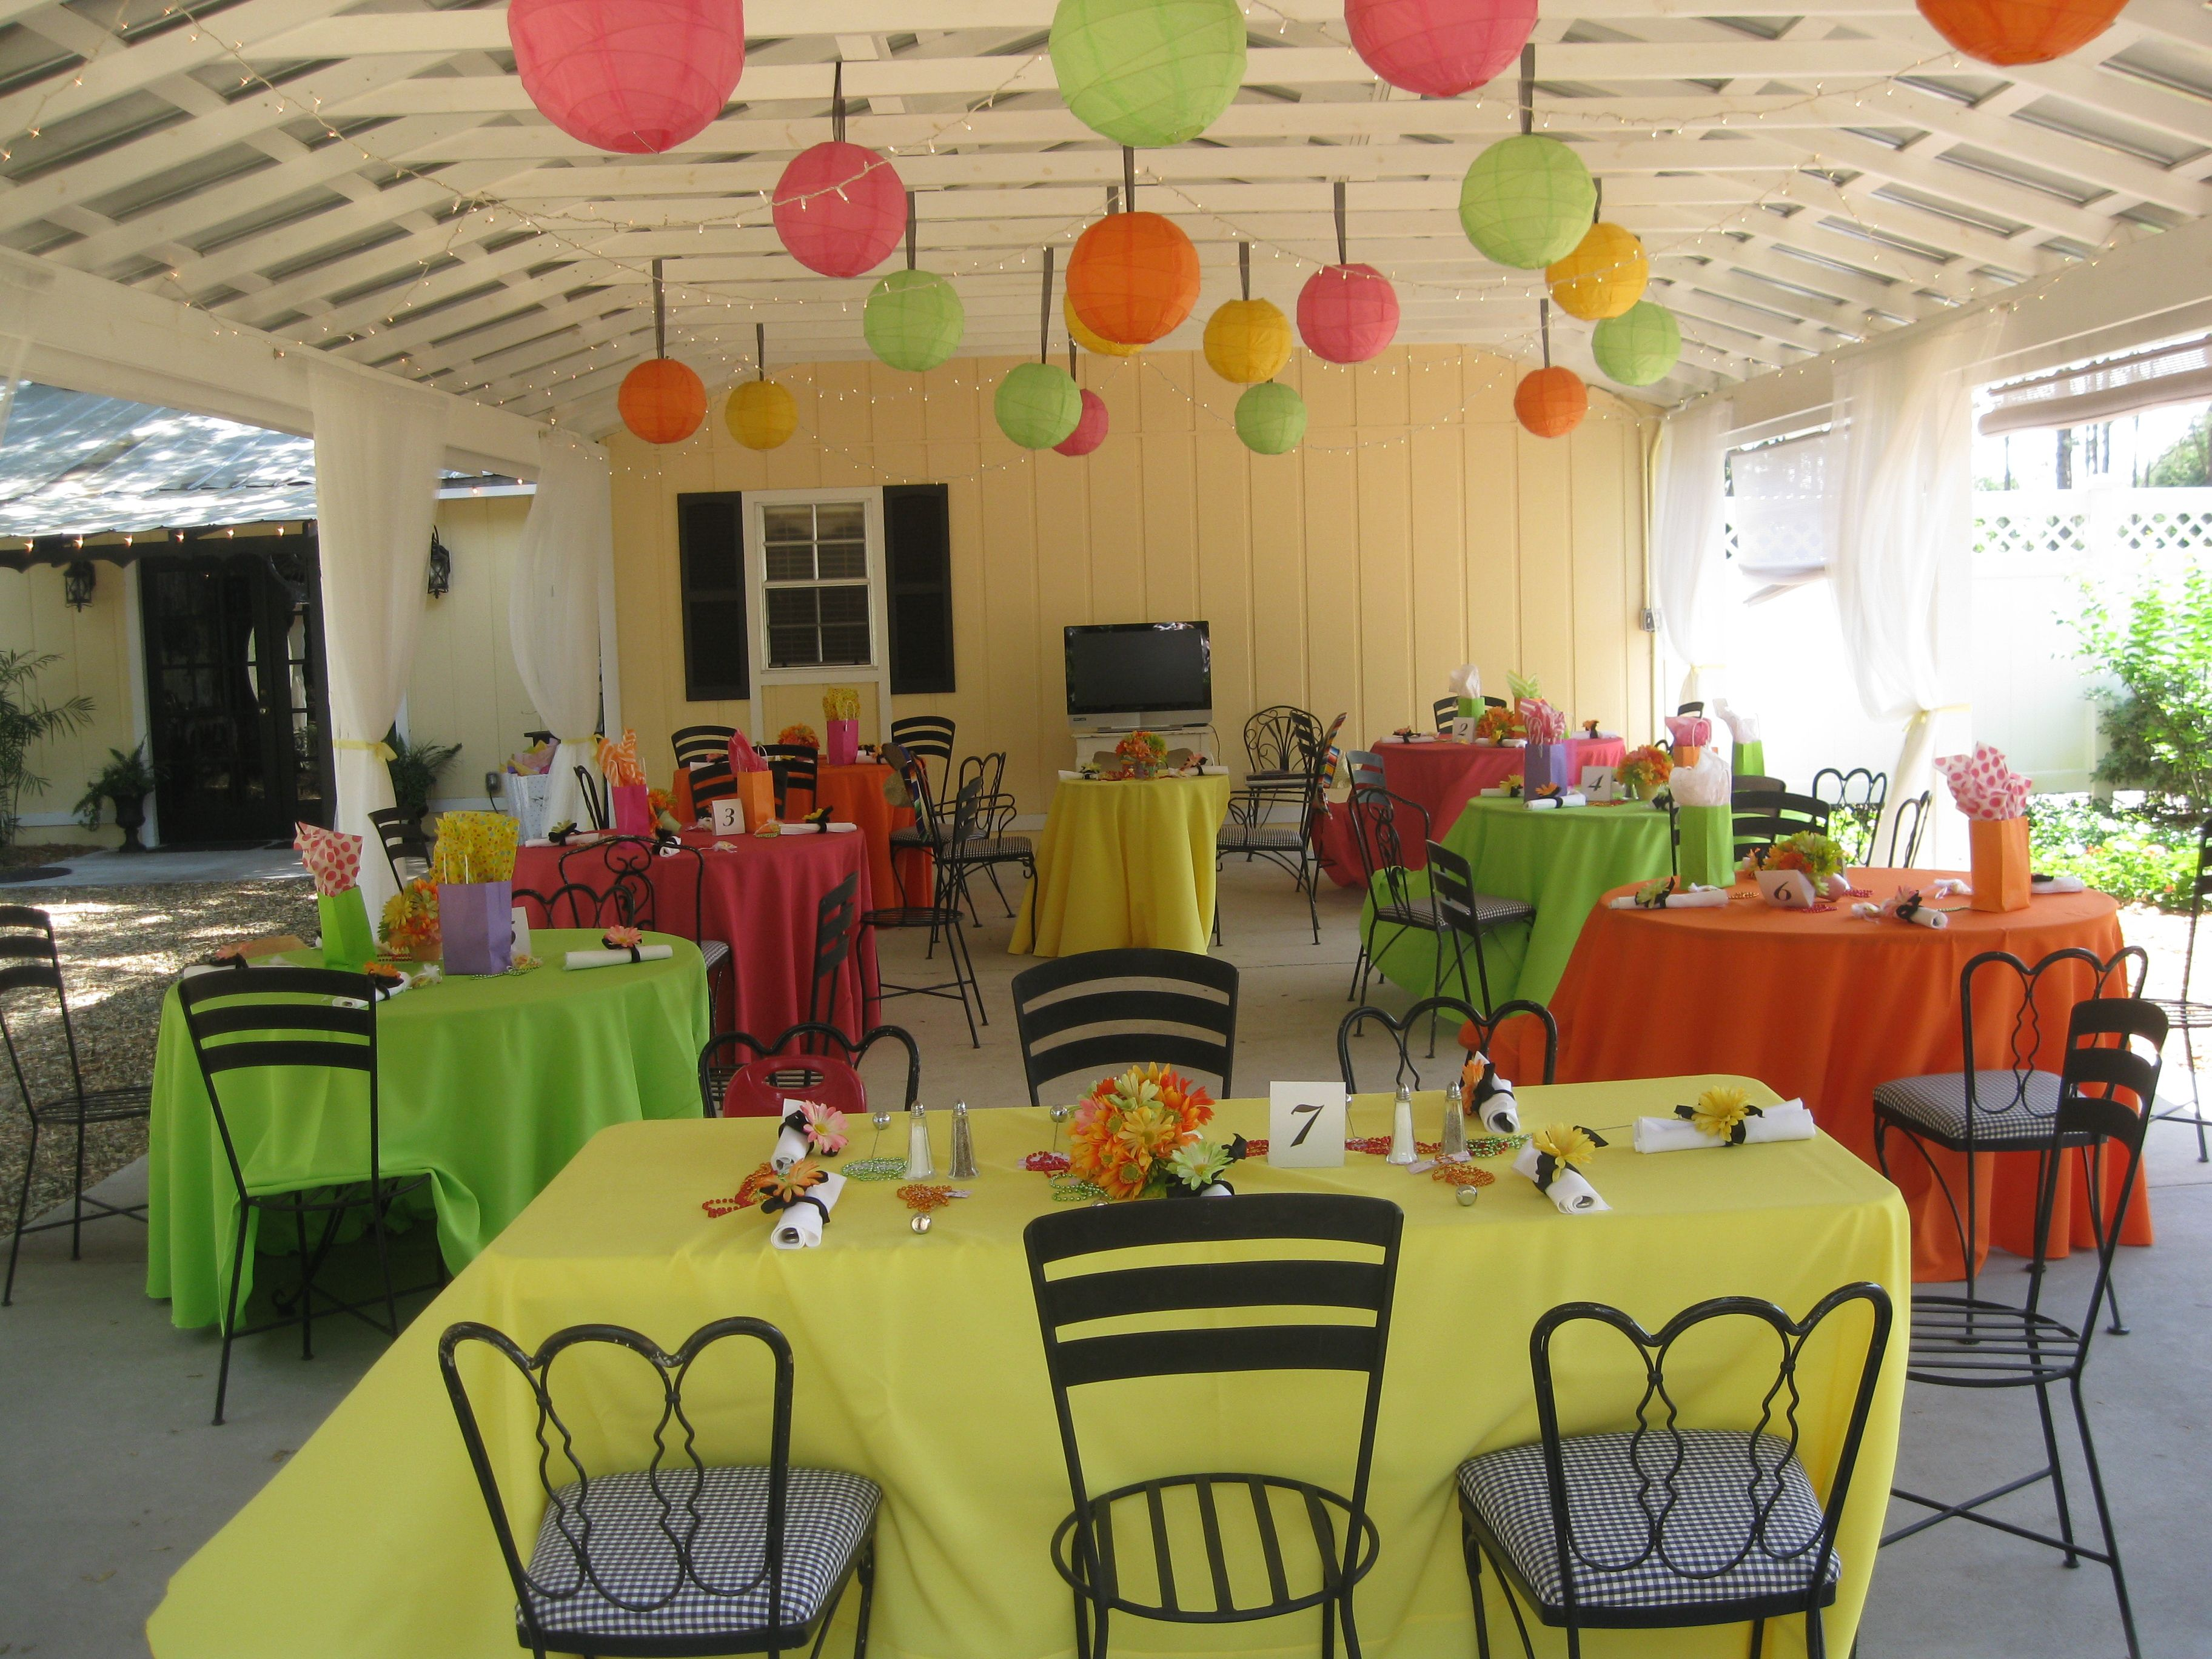 Fiesta table decorations ideas - Find This Pin And More On Mexican Themed Fiesta Sweet 16 Ideas